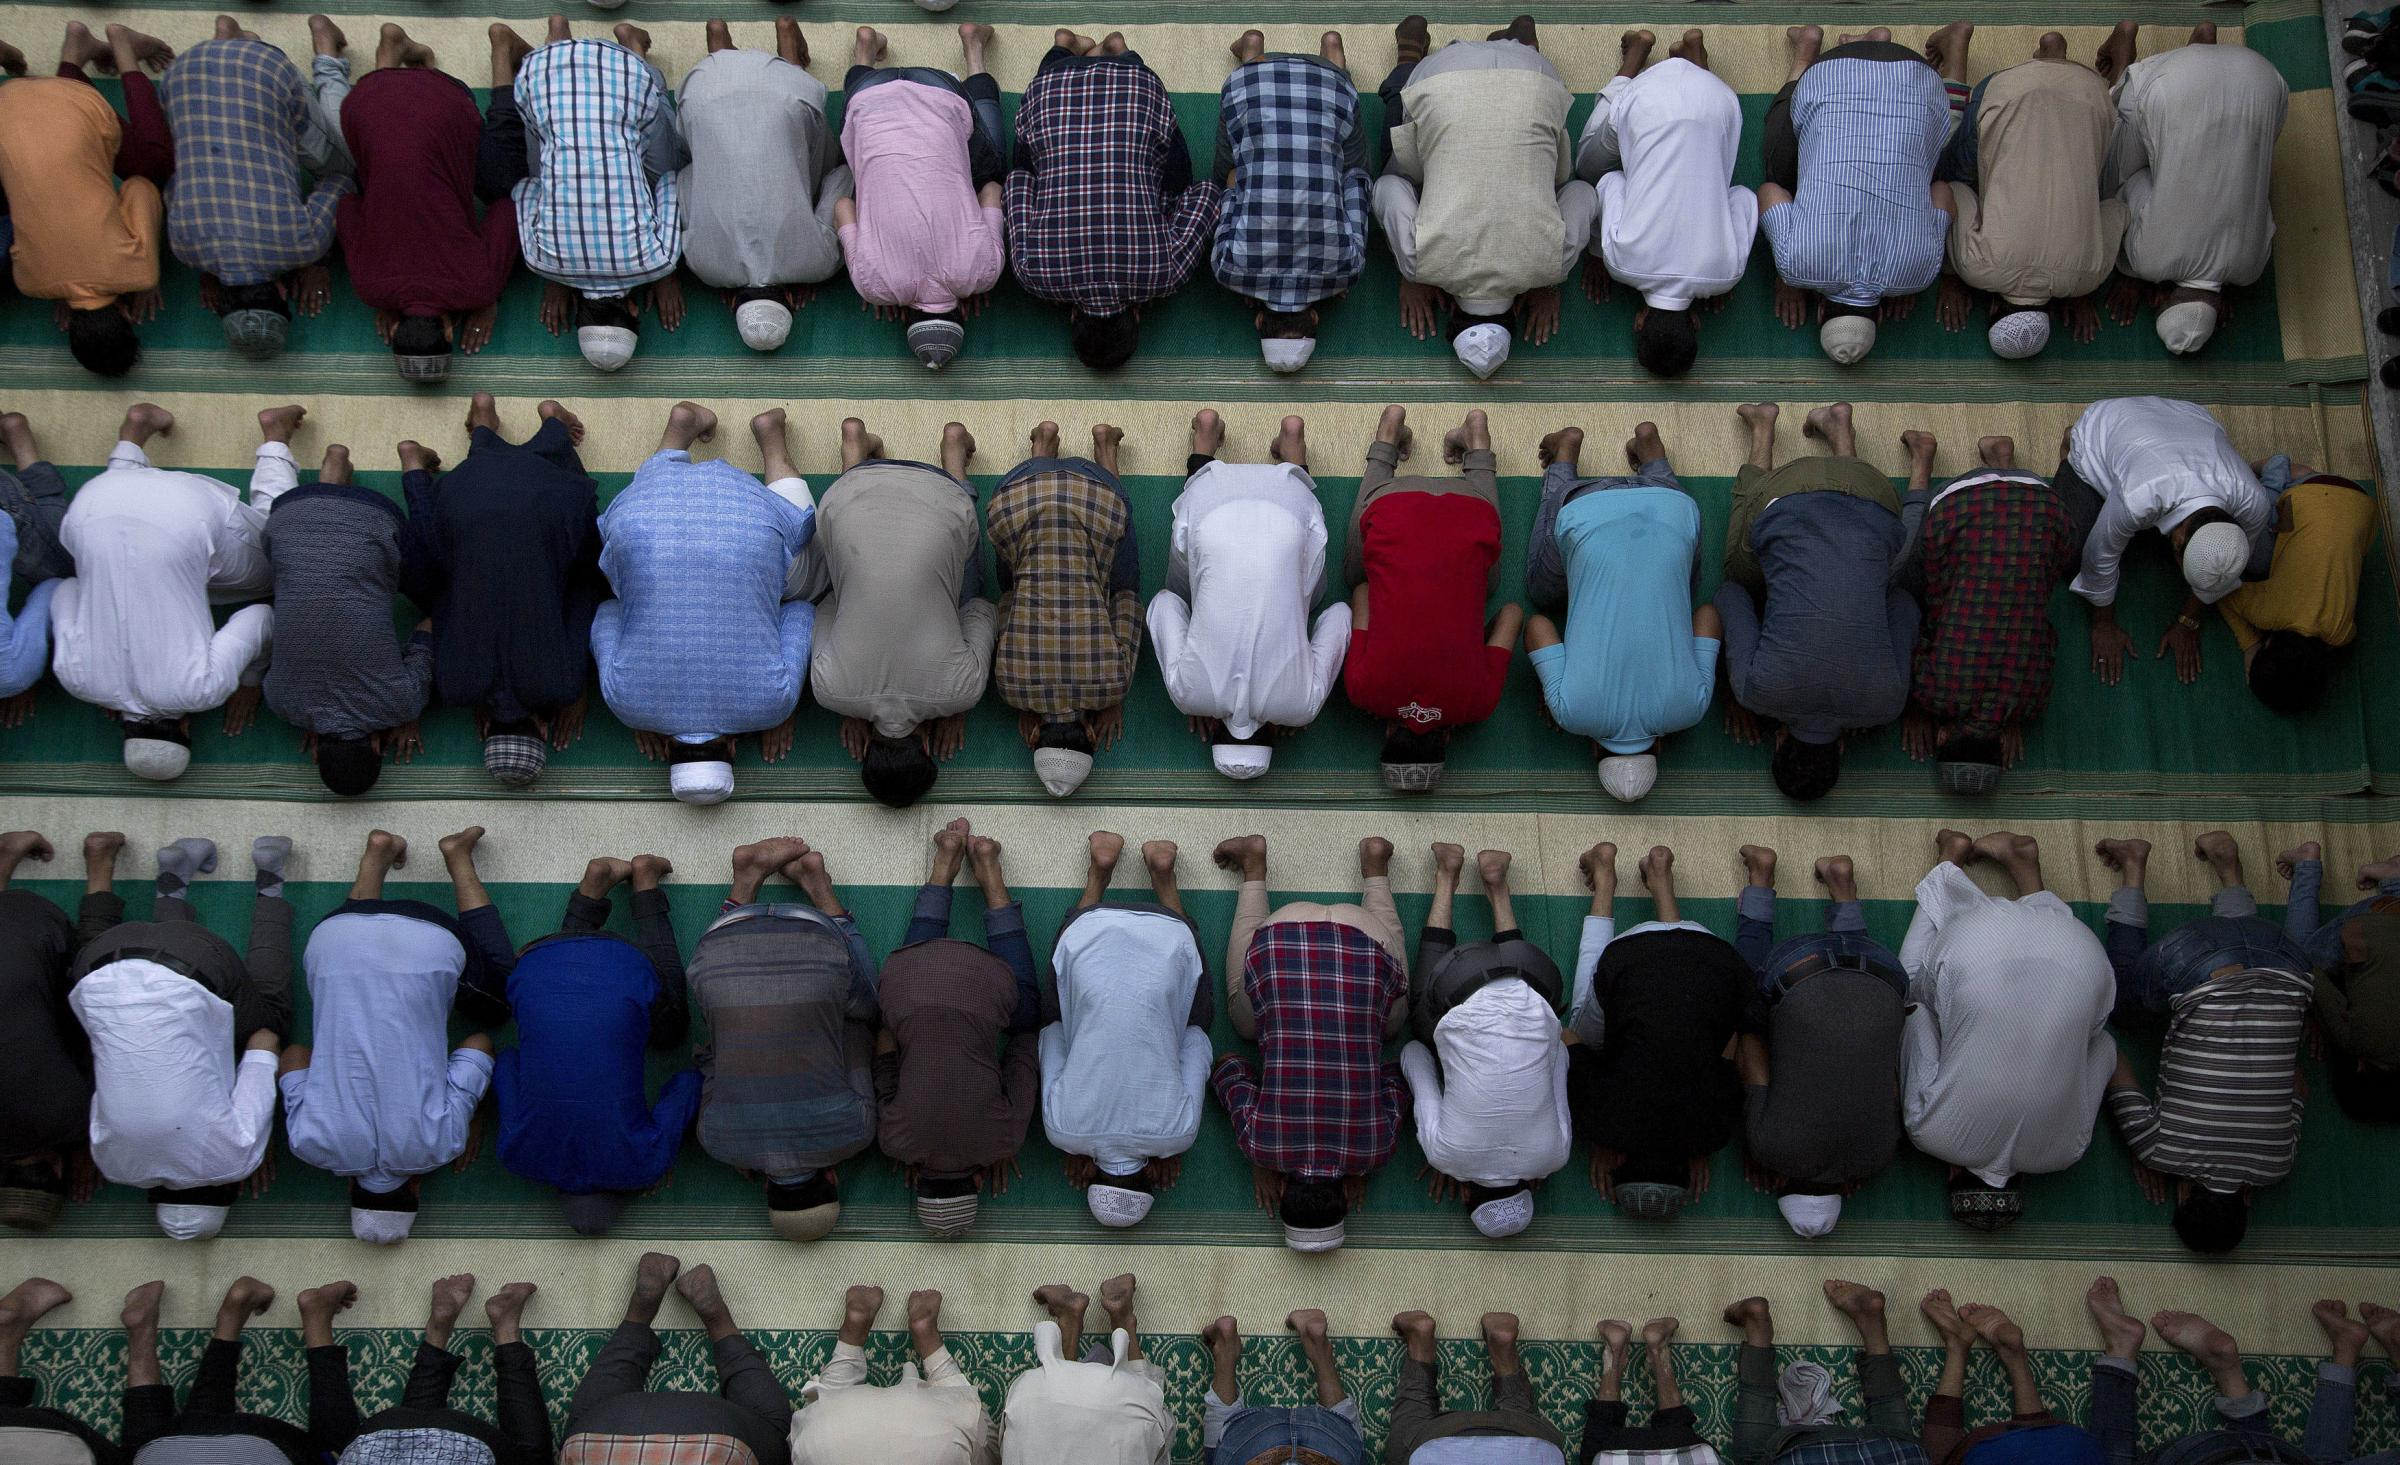 People offer prayers at a mosque during the month of Ramadan in Dehradun, India. Islam's holiest month is a period of intense prayer, dawn-to-dusk fasting and nightly feasts. (APAnupam Nath).